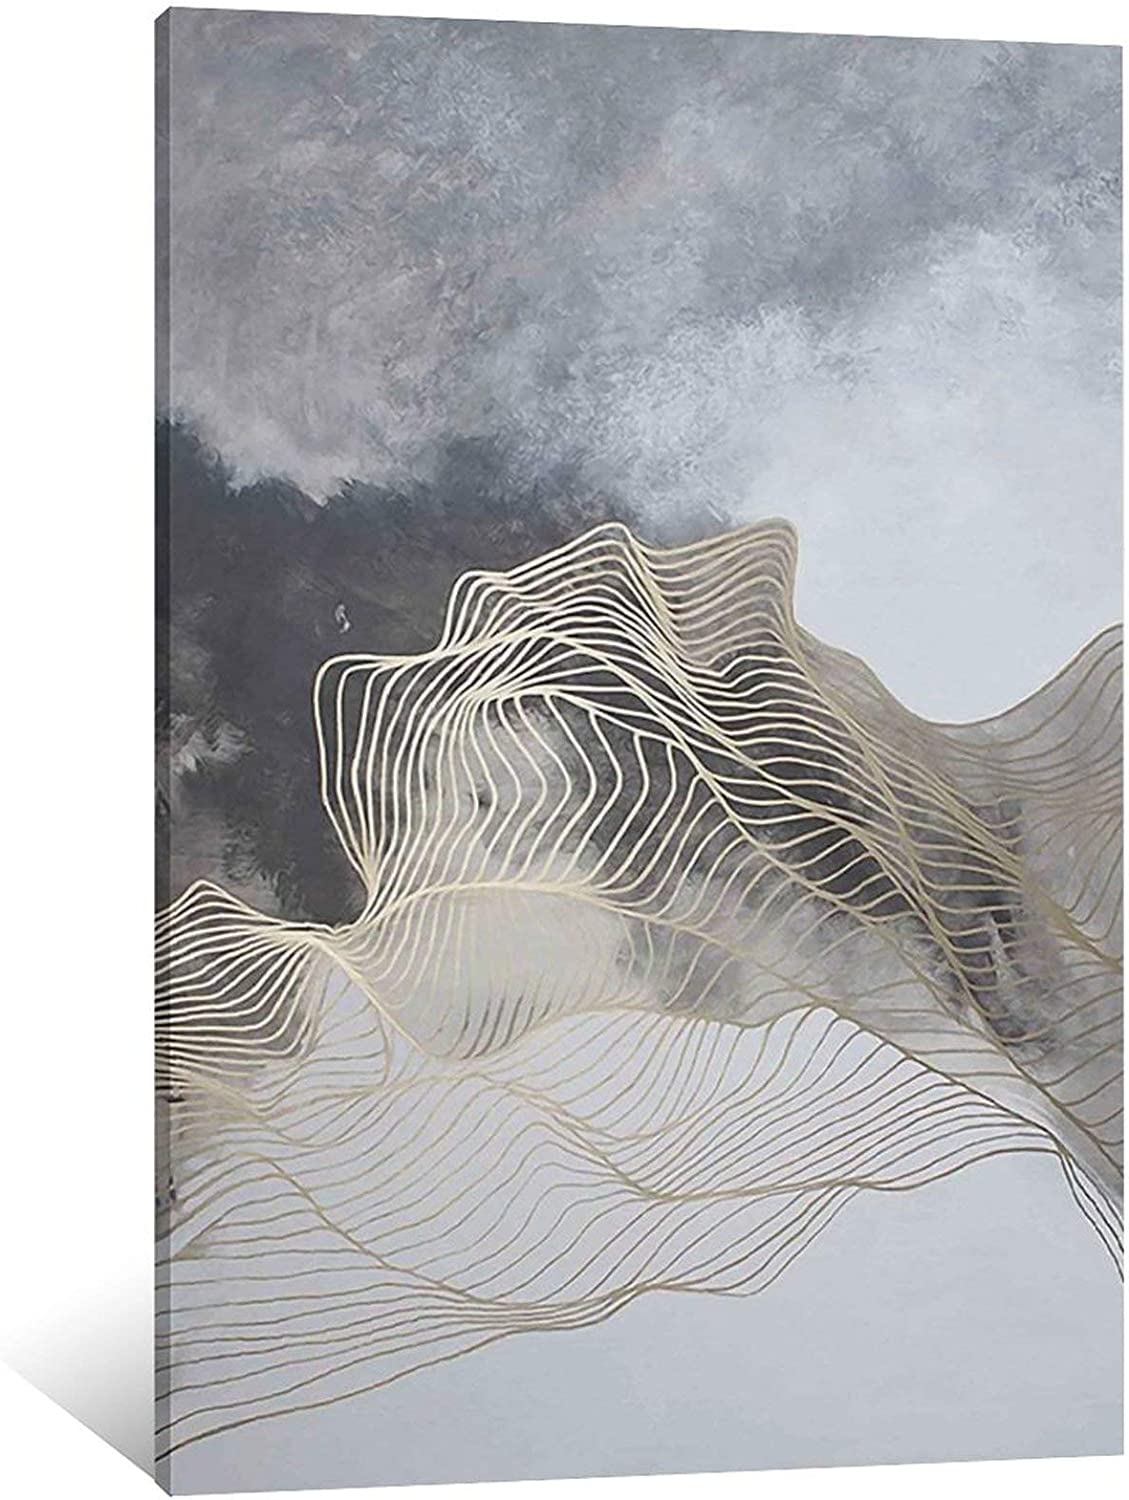 Artistic Abstract Painting 70% OFF Outlet Memphis Mall < Wall Canvas Decorative Art